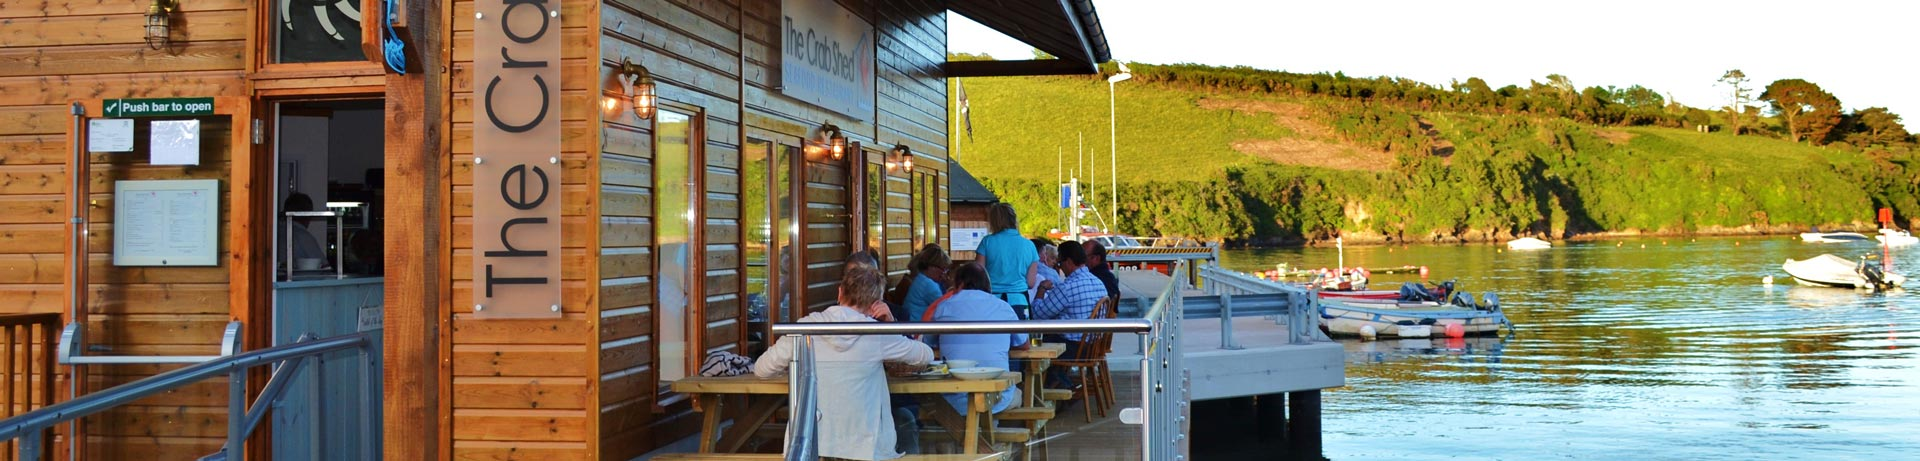 Crab Shed Salcombe for seafood dining with great views over Salcombe harbour